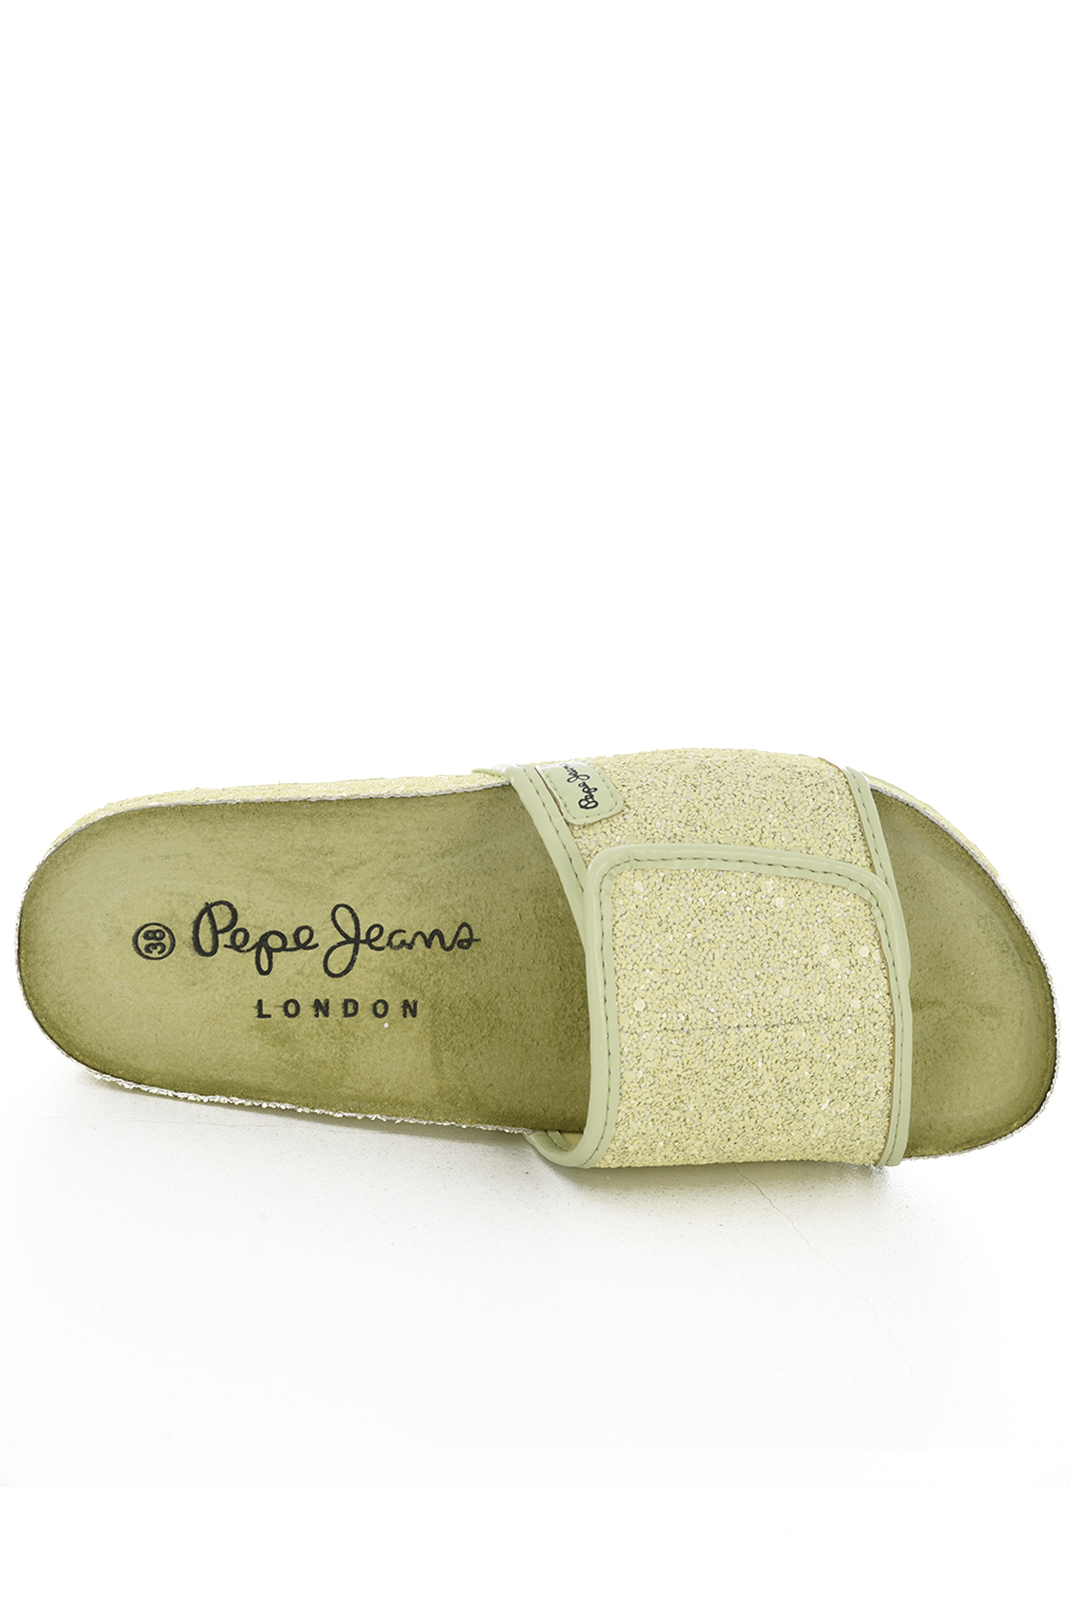 Chaussures  Pepe jeans PLS90325 OBAN MOON 639 LIMA